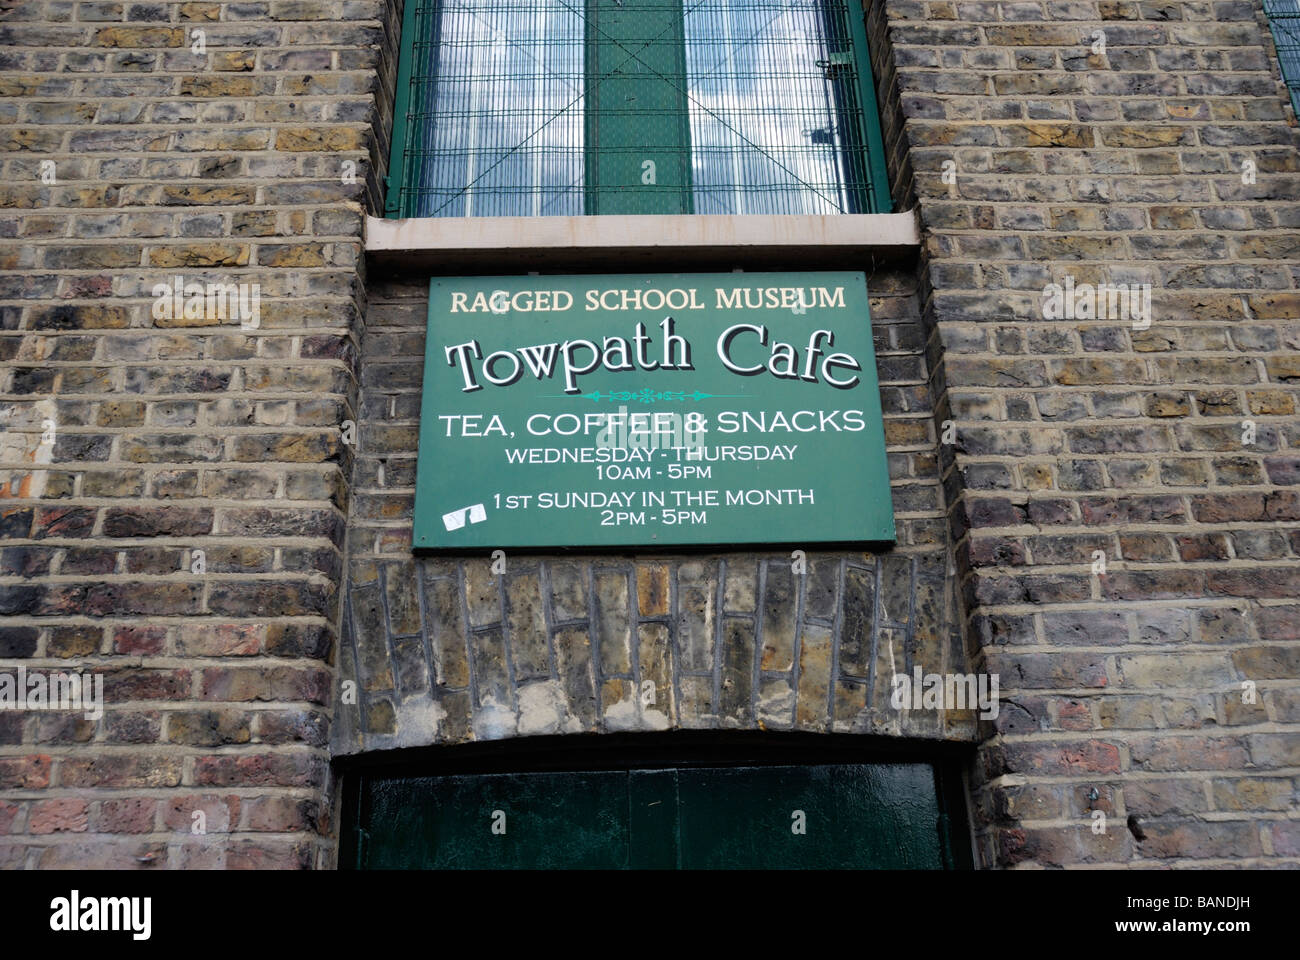 Ragged School Museum Towpath Cafe sign Stepney London - Stock Image